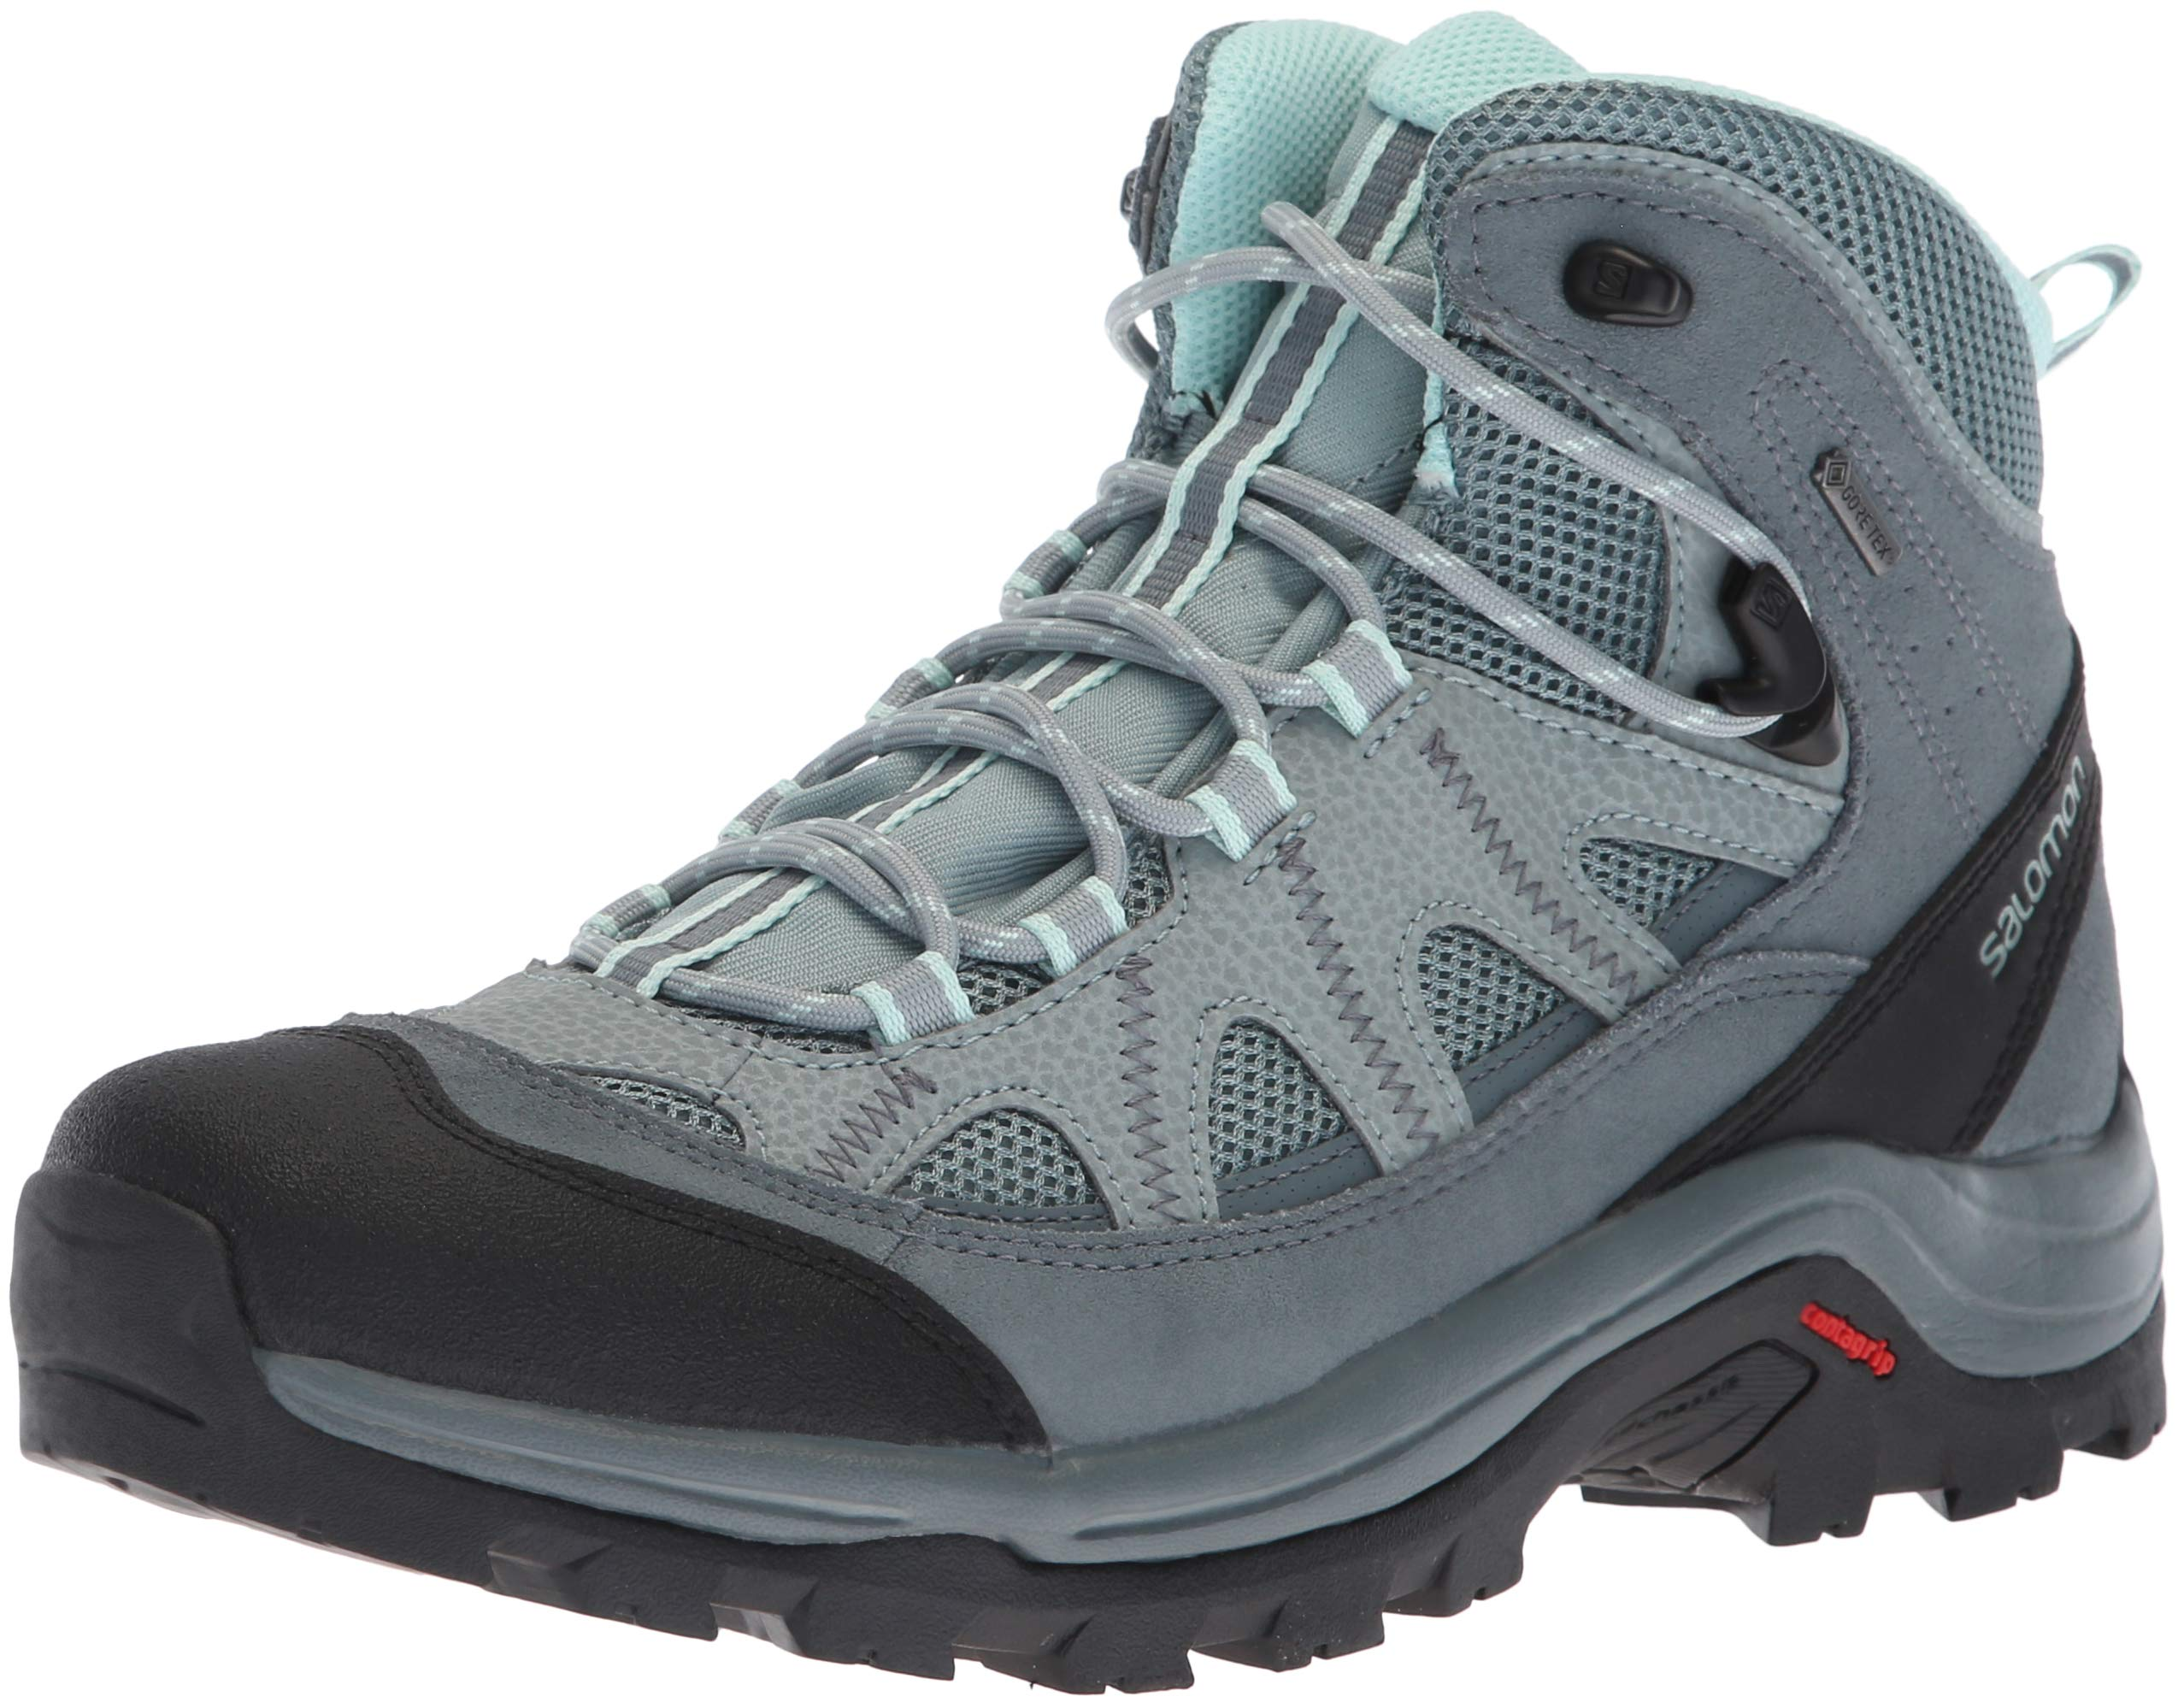 Salomon Women's Authentic LTR GTX W Backpacking Boot, Lead/Stormy Weather/Eggshell Blue, 8.5 B US by SALOMON